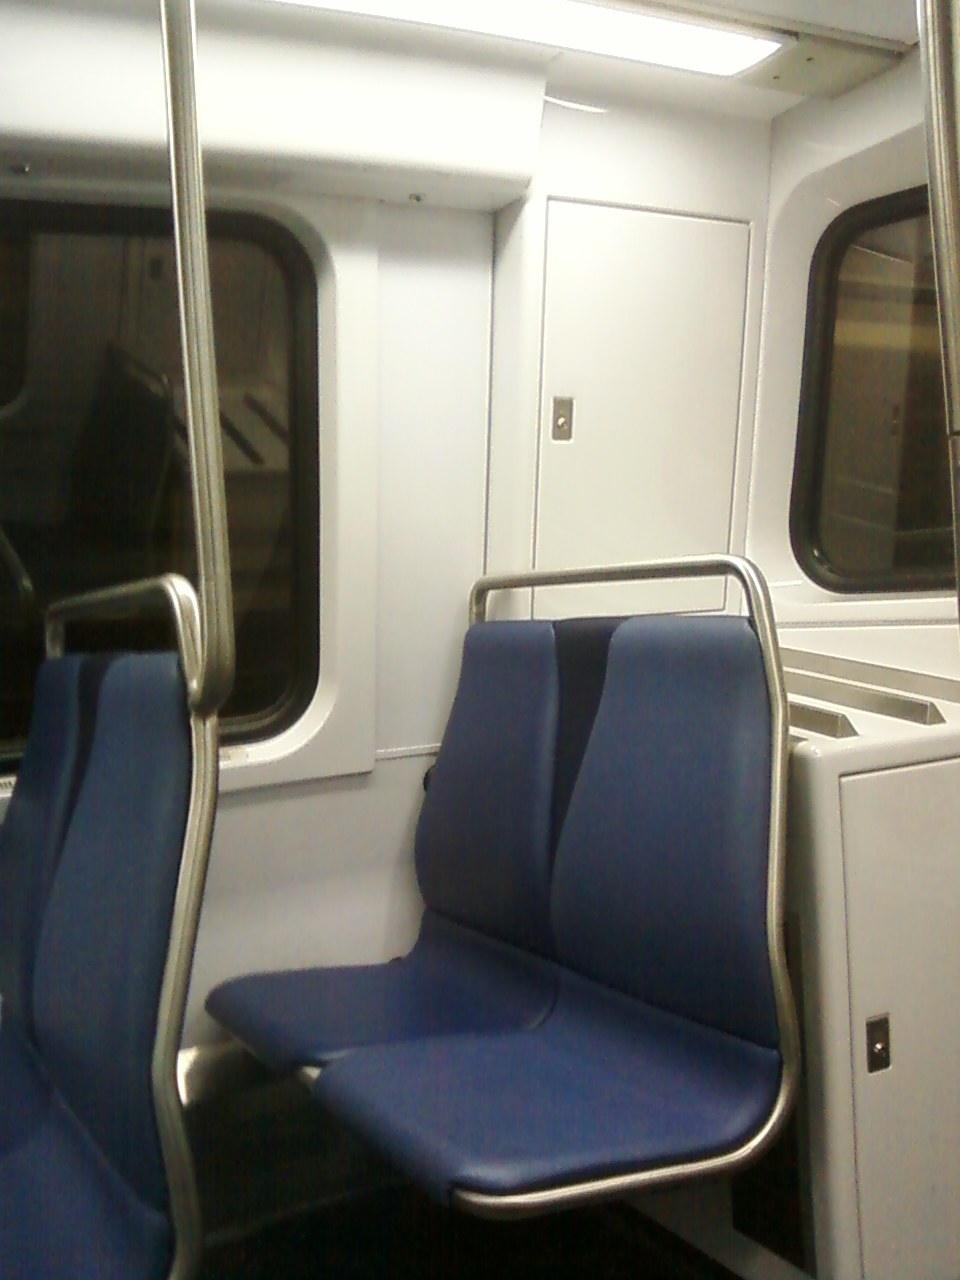 wmata dc metro 7000 series cars end seats where the private section